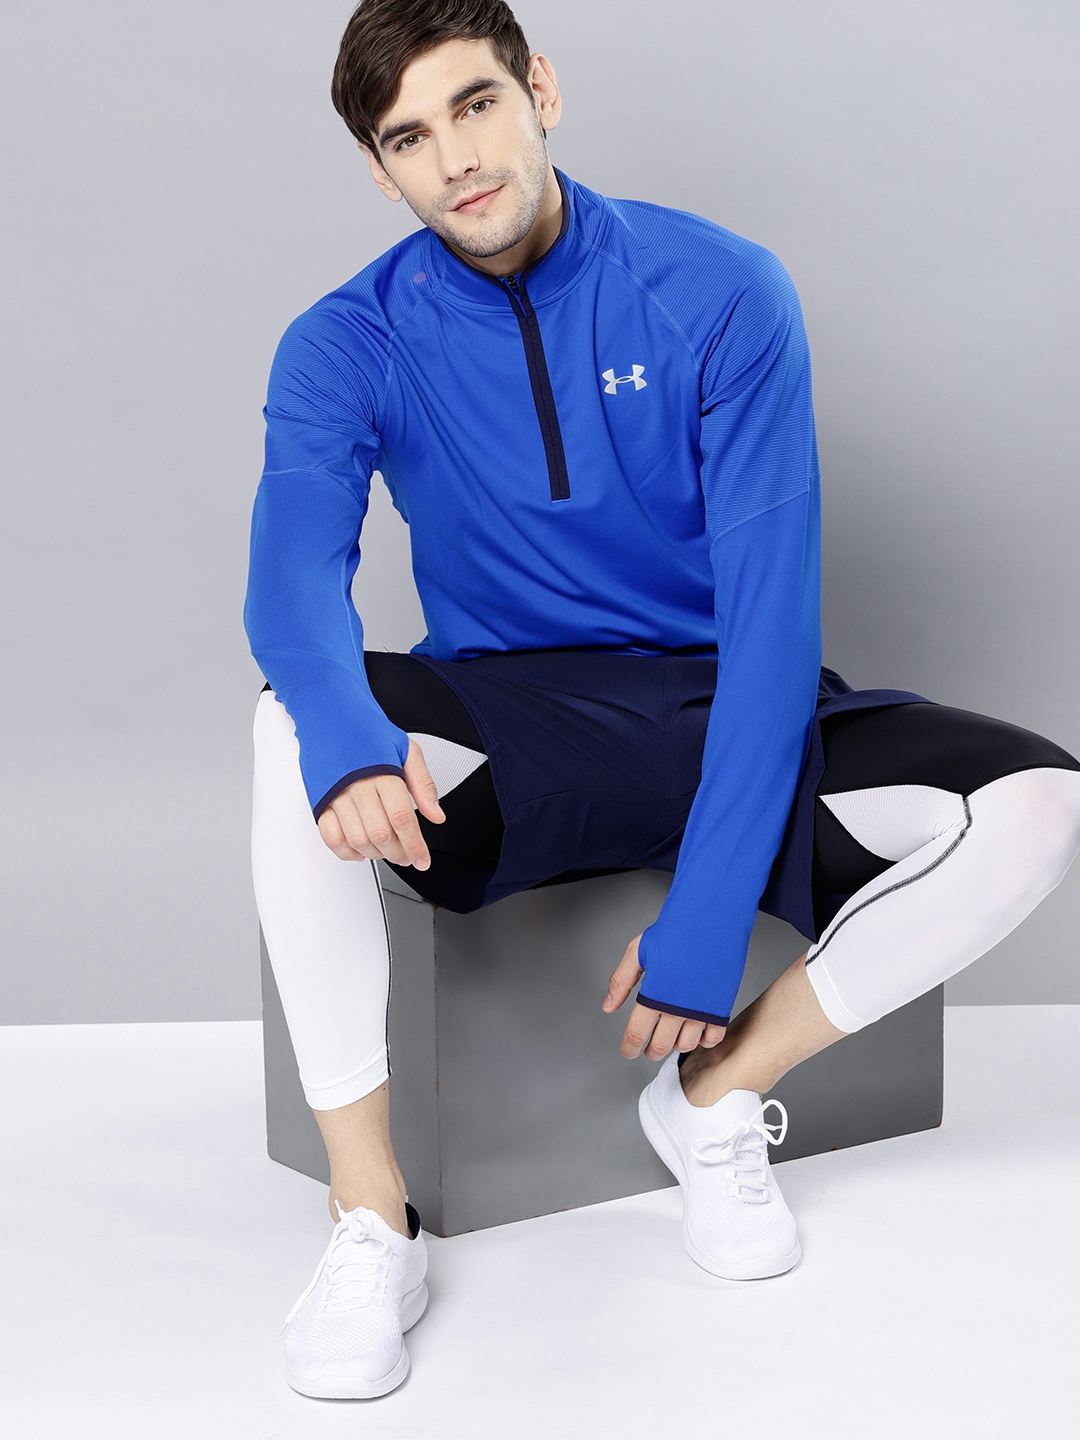 Individualidad muerto Hacer bien  Buy UNDER ARMOUR Men Blue Solid Threadborne Running T Shirt - Tshirts for  Men 7628046 | Myntra